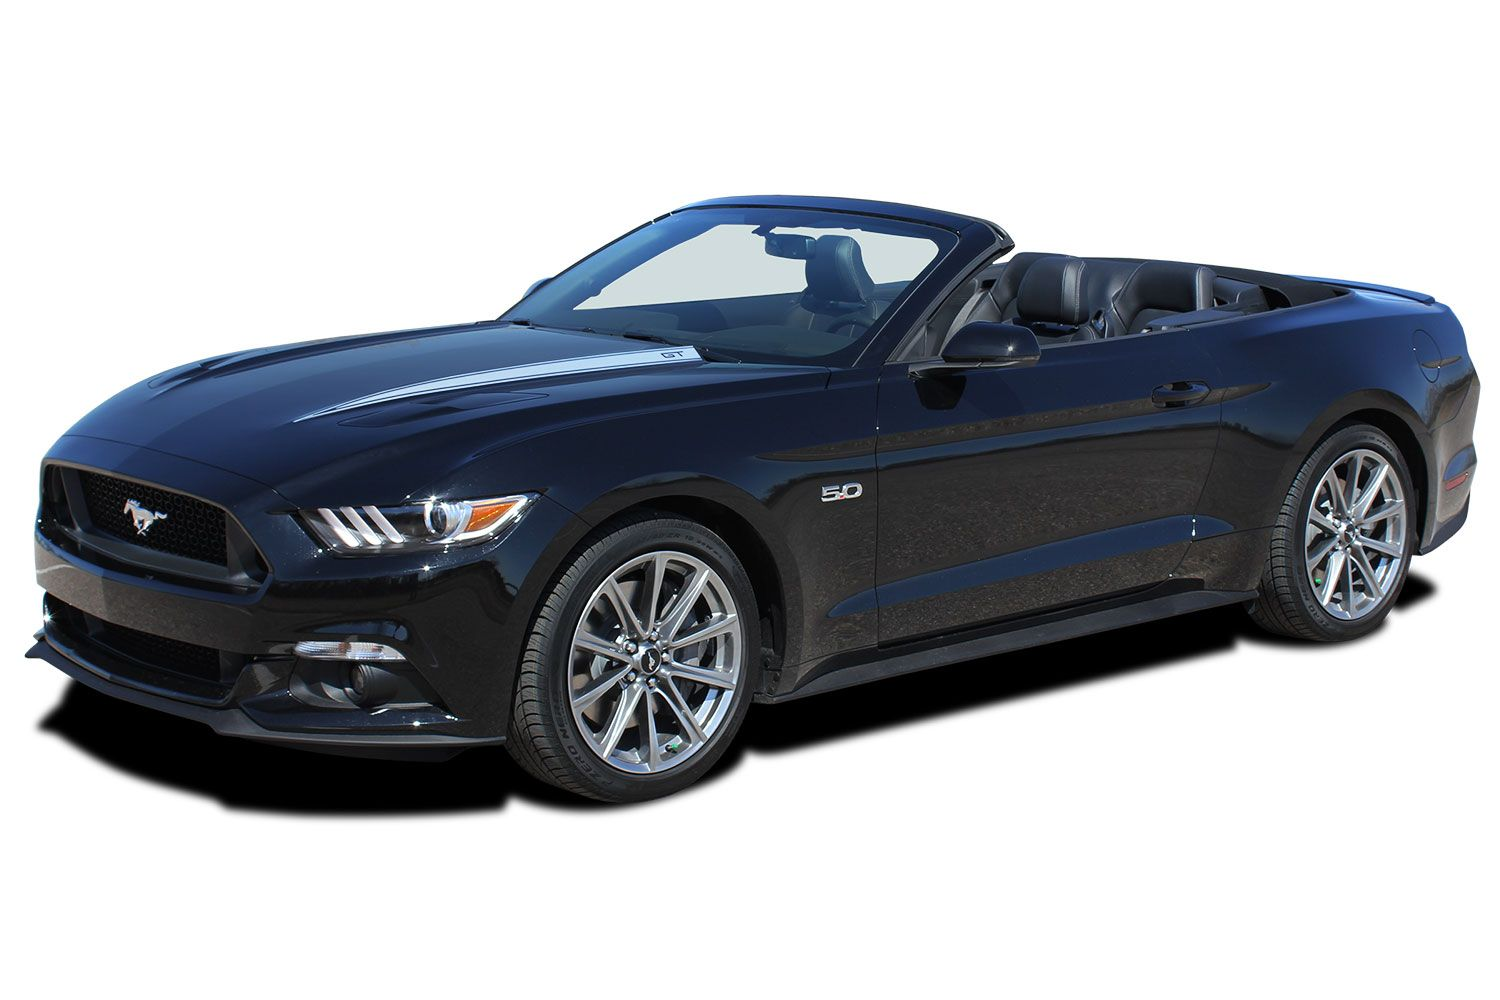 Ford Mustang Vinyl Graphics Decal Stripes Lance Hood Spears Agp A on 2000 Dodge Dakota Decal